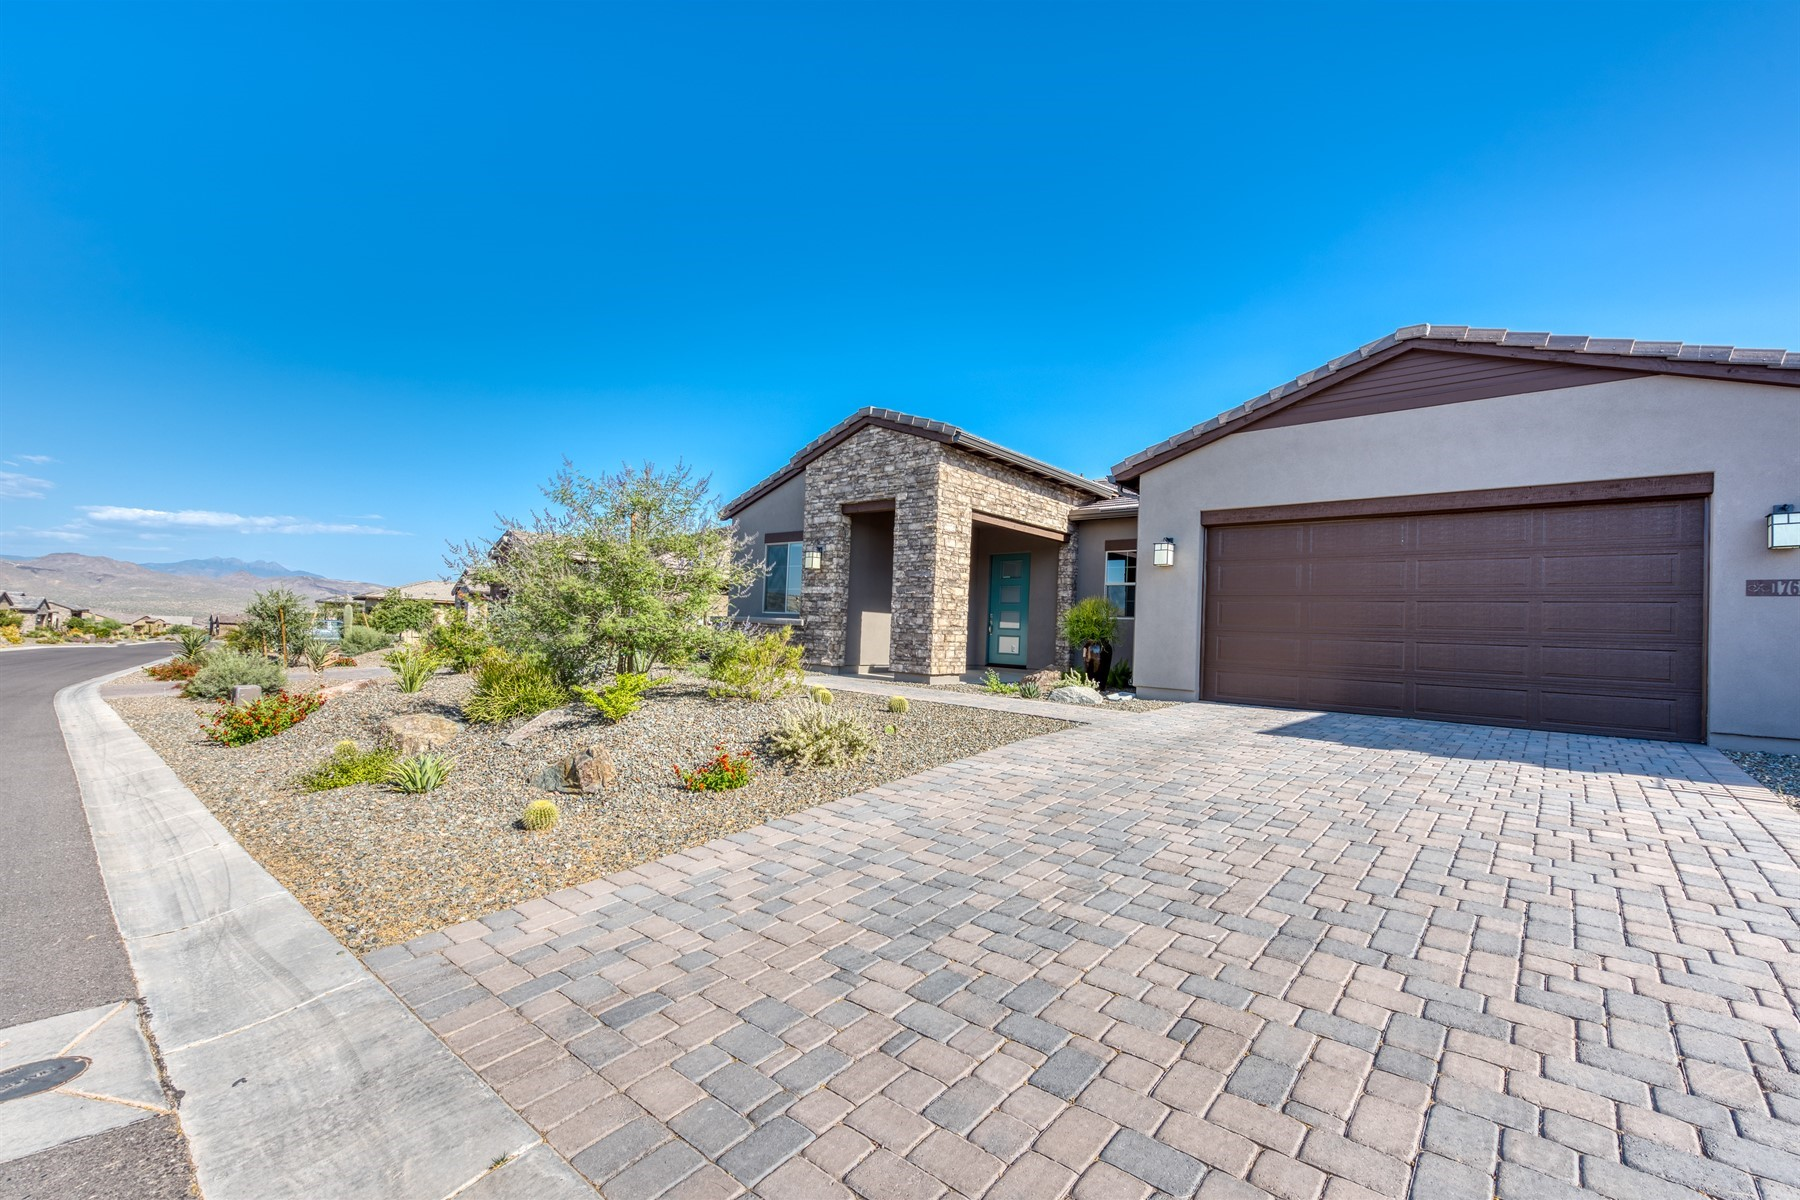 Single Family Homes for Sale at Trilogy at Verde River 17659 E Fort Verde Road Rio Verde, Arizona 85263 United States